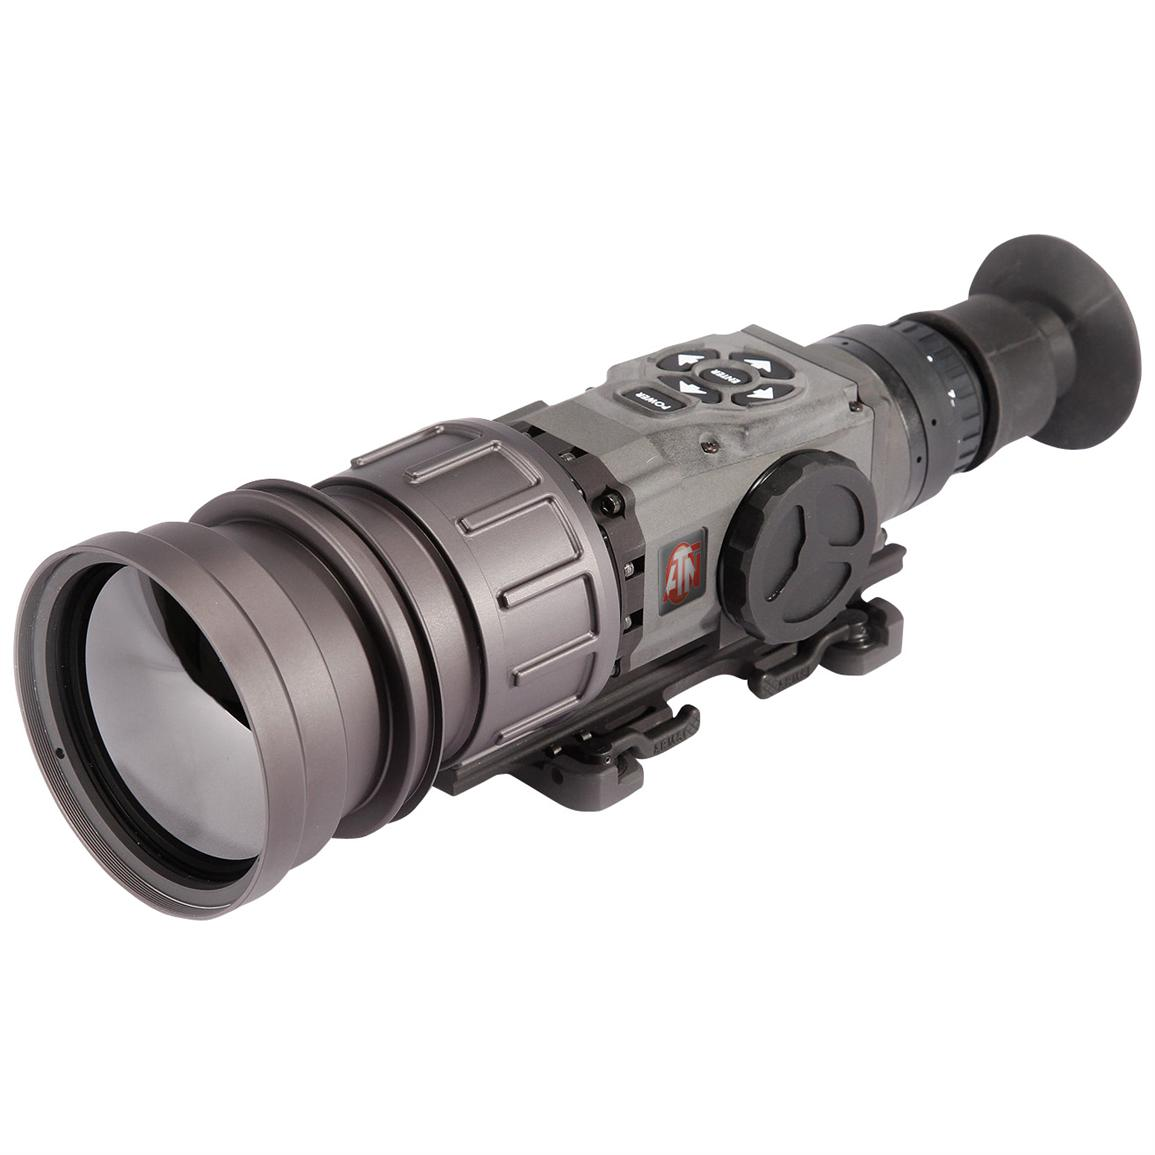 ATN® ThOR 320-9X (30 Hz) Thermal Weapon Sight